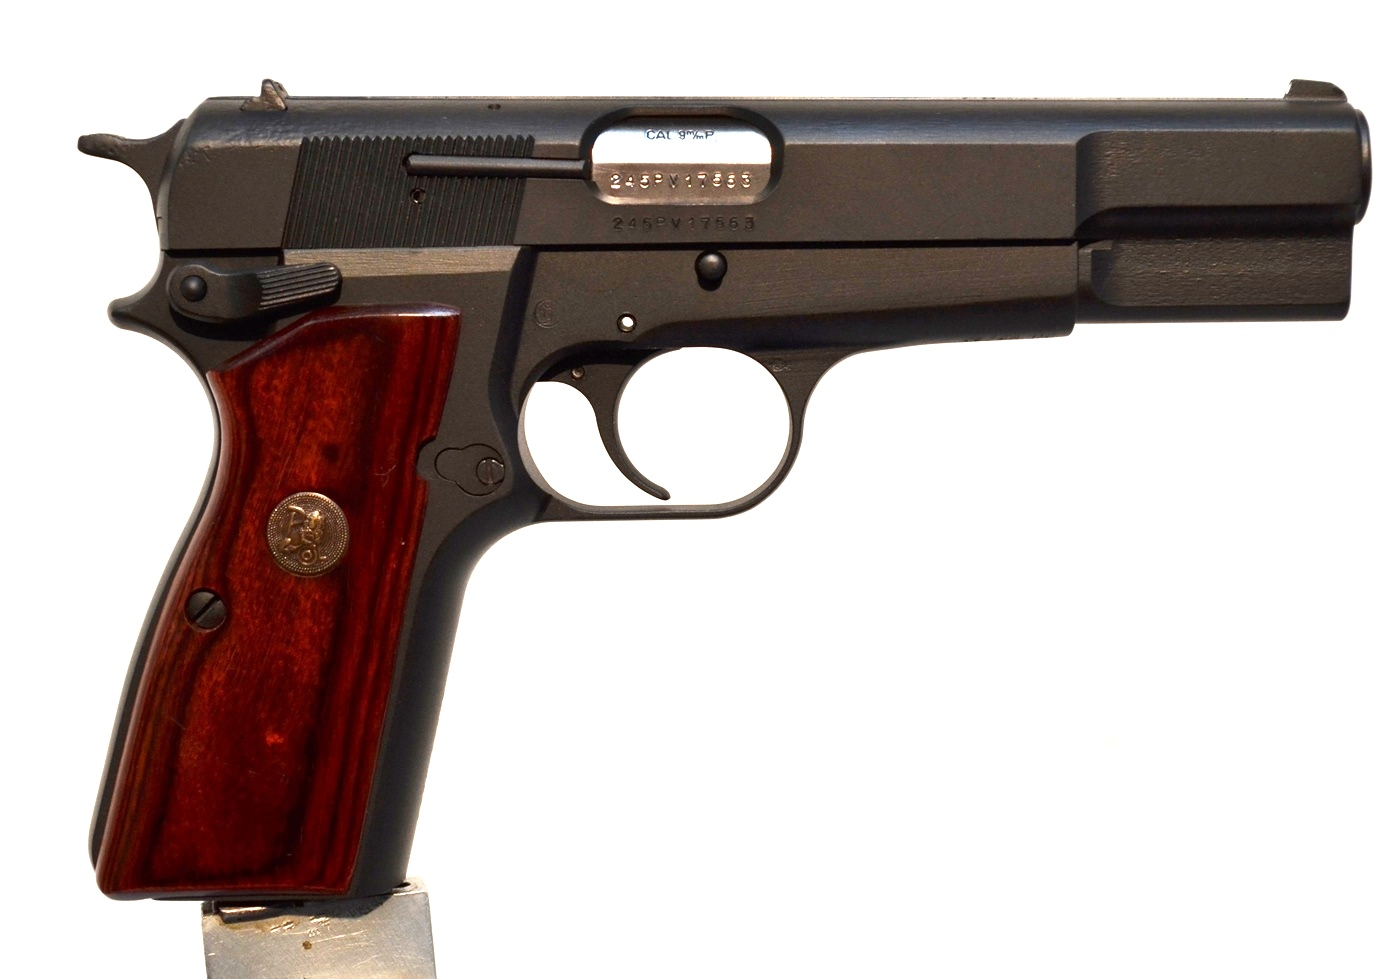 FN Browning Hi Power 9mm Custom Refinished # 245PV17563